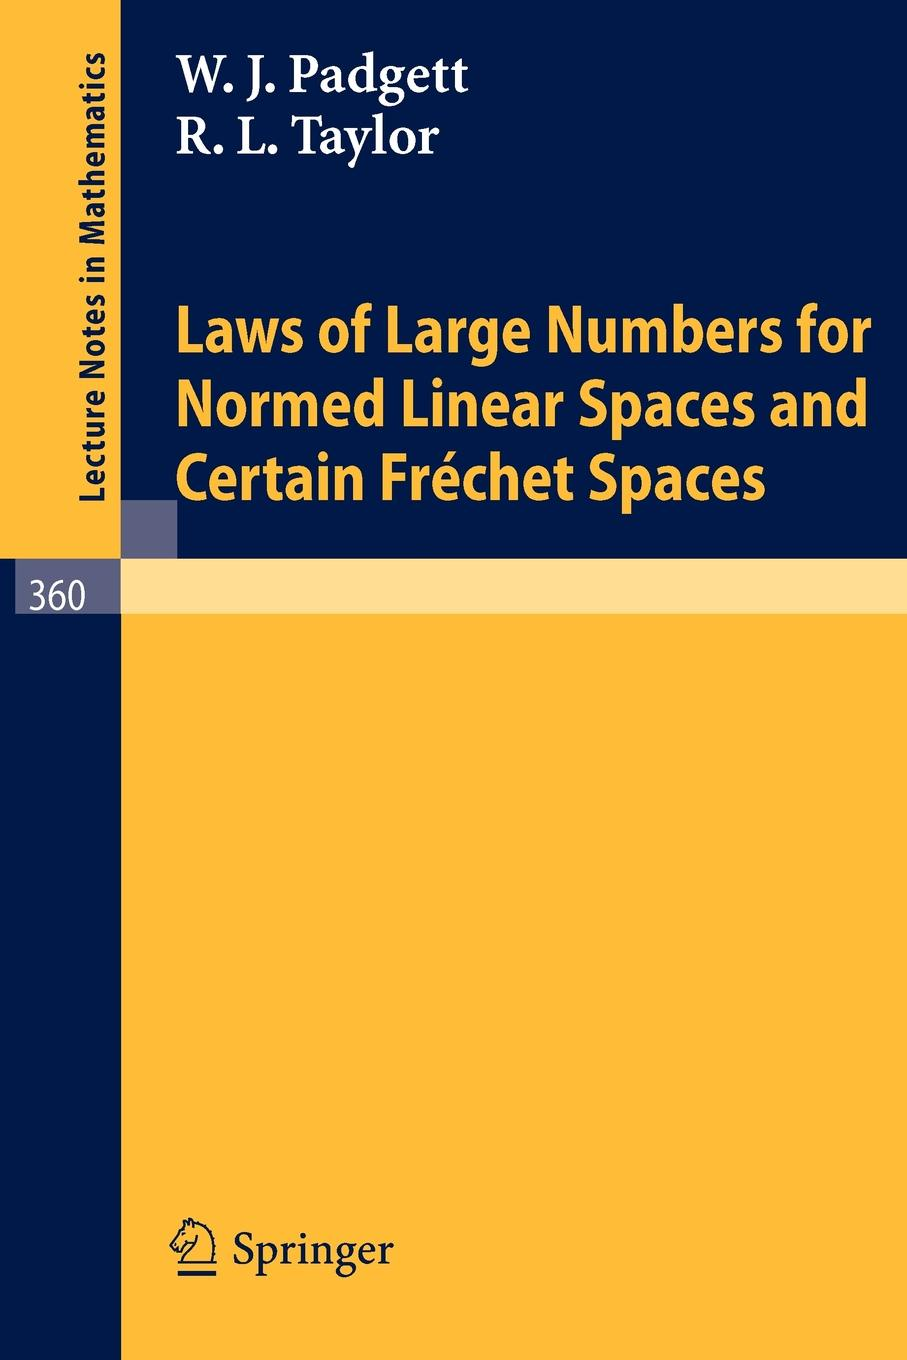 W. J. Padgett, R. L. Taylor Laws of Large Numbers for Normed Linear Spaces and Certain Frechet Spaces louis w fry liminal spaces and call for praxis ing